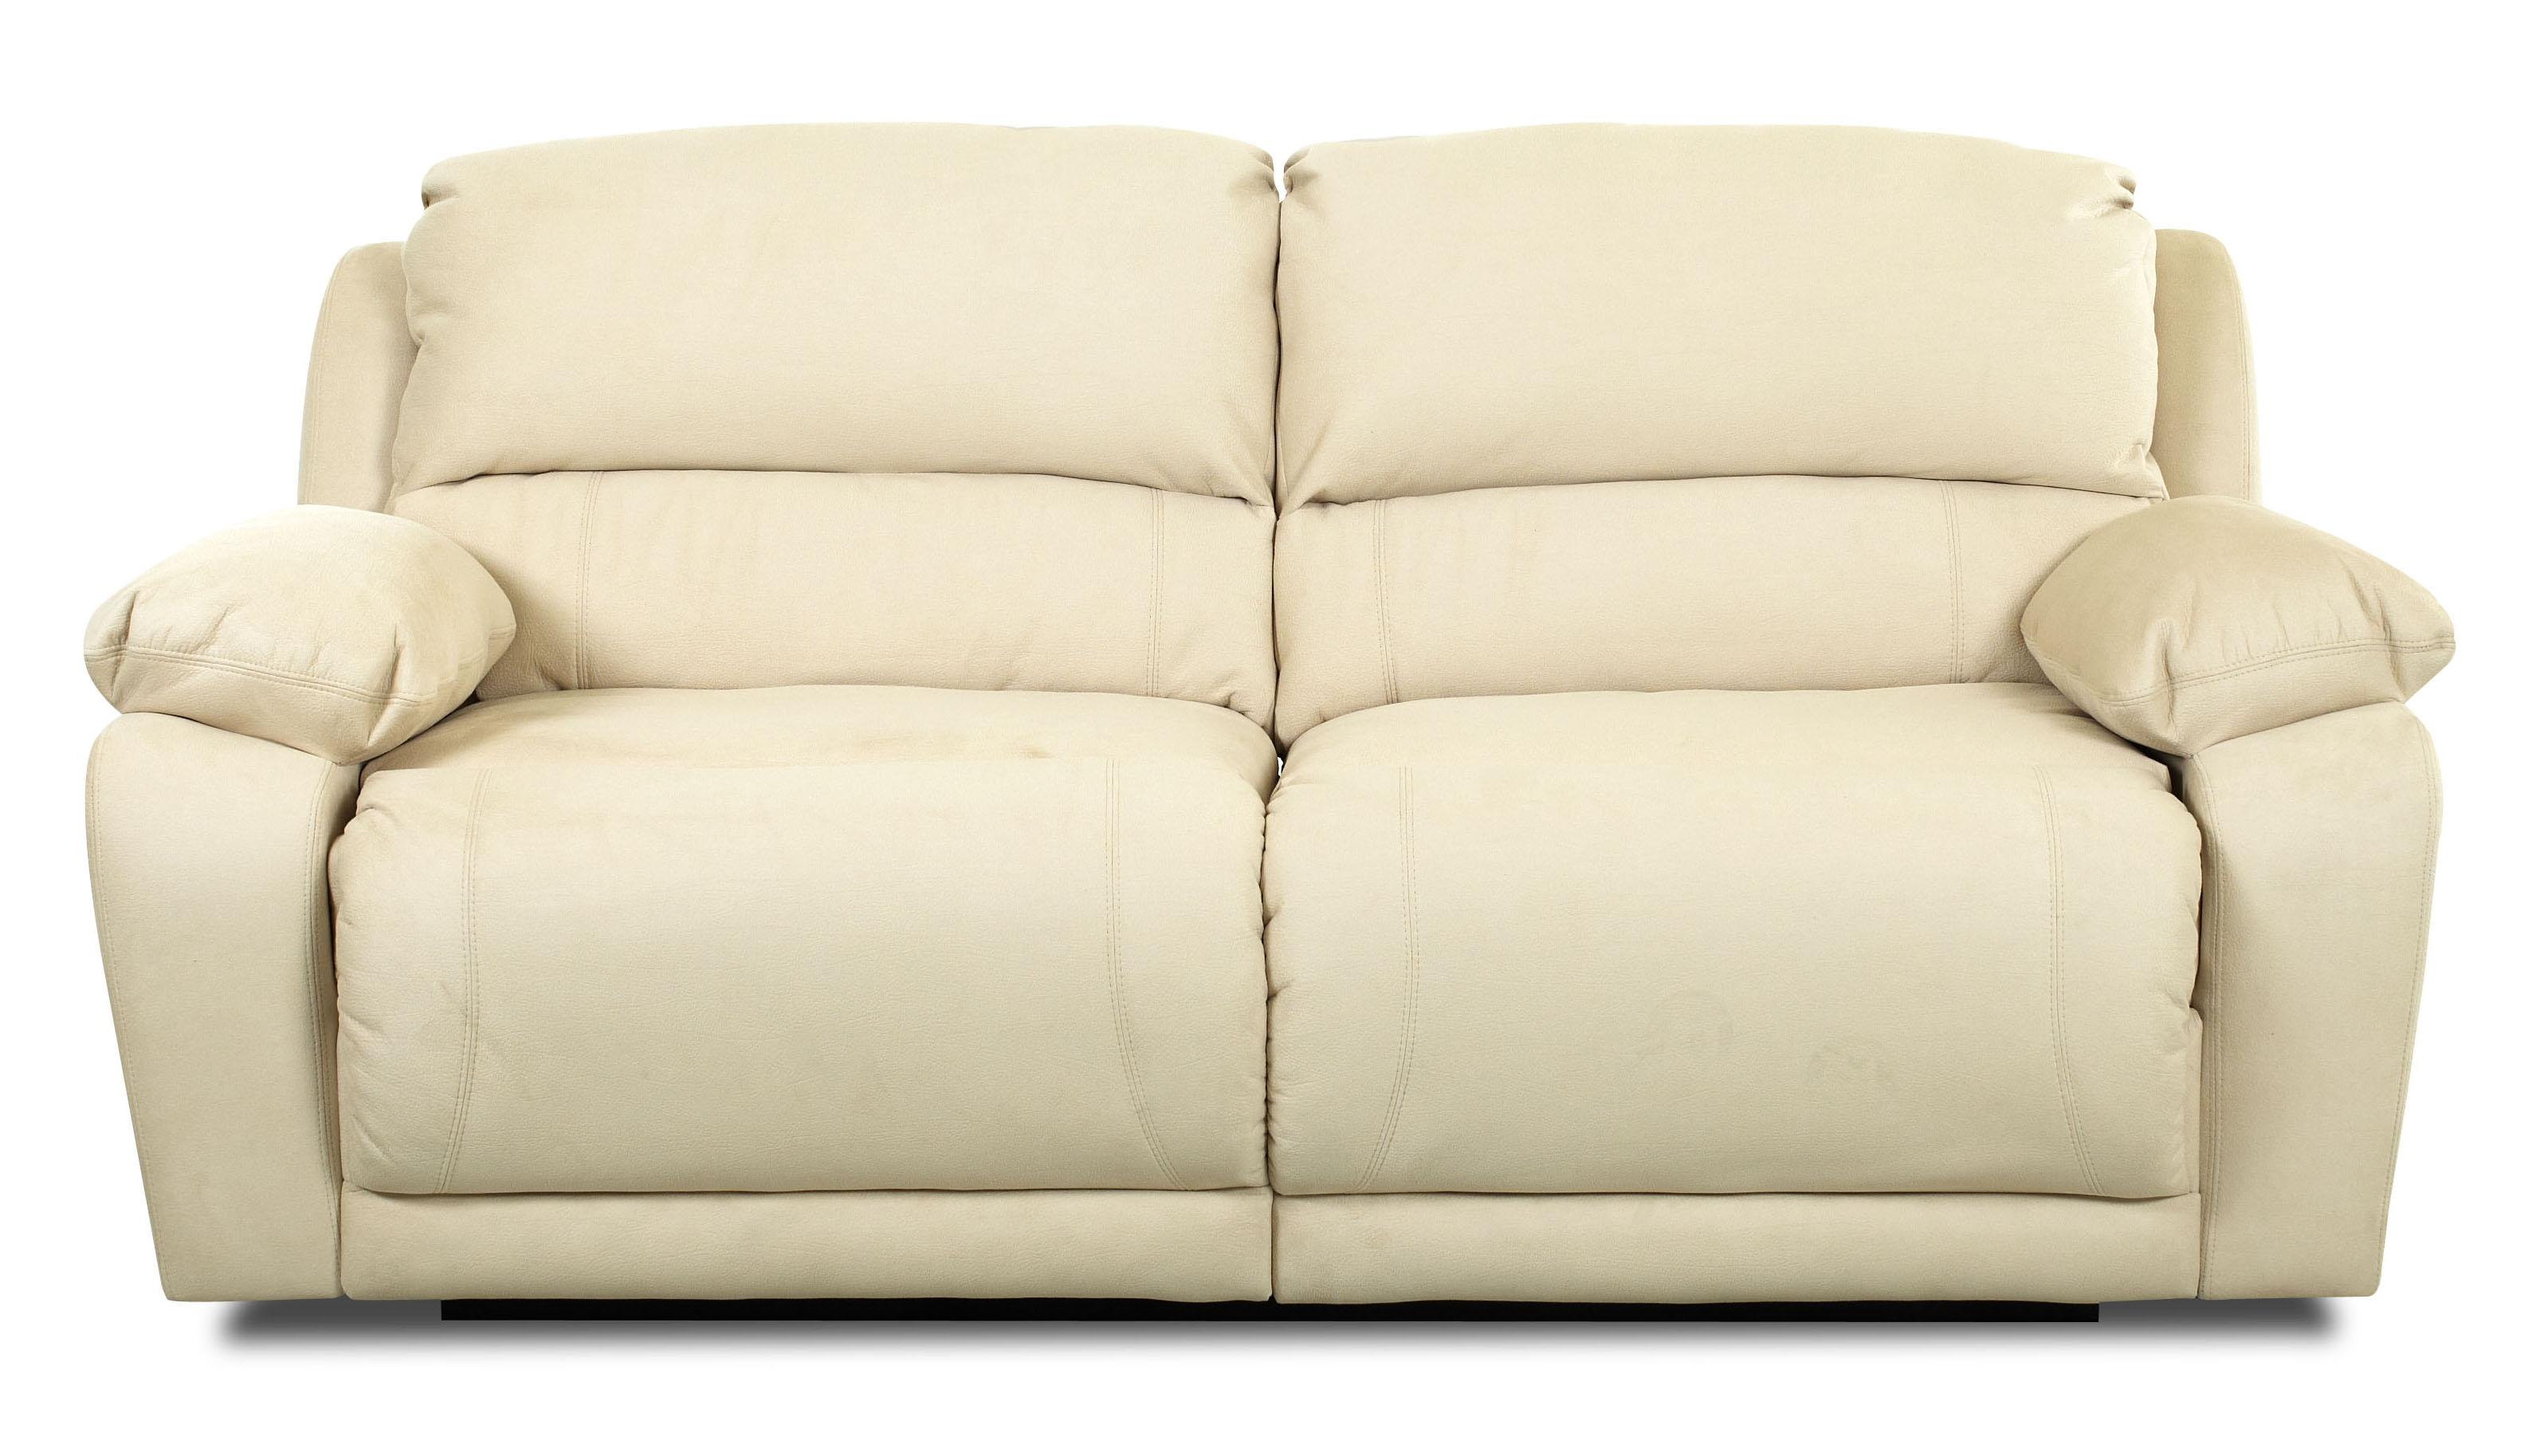 Klaussner Charmed Reclining Sofa - Item Number: 30603RS